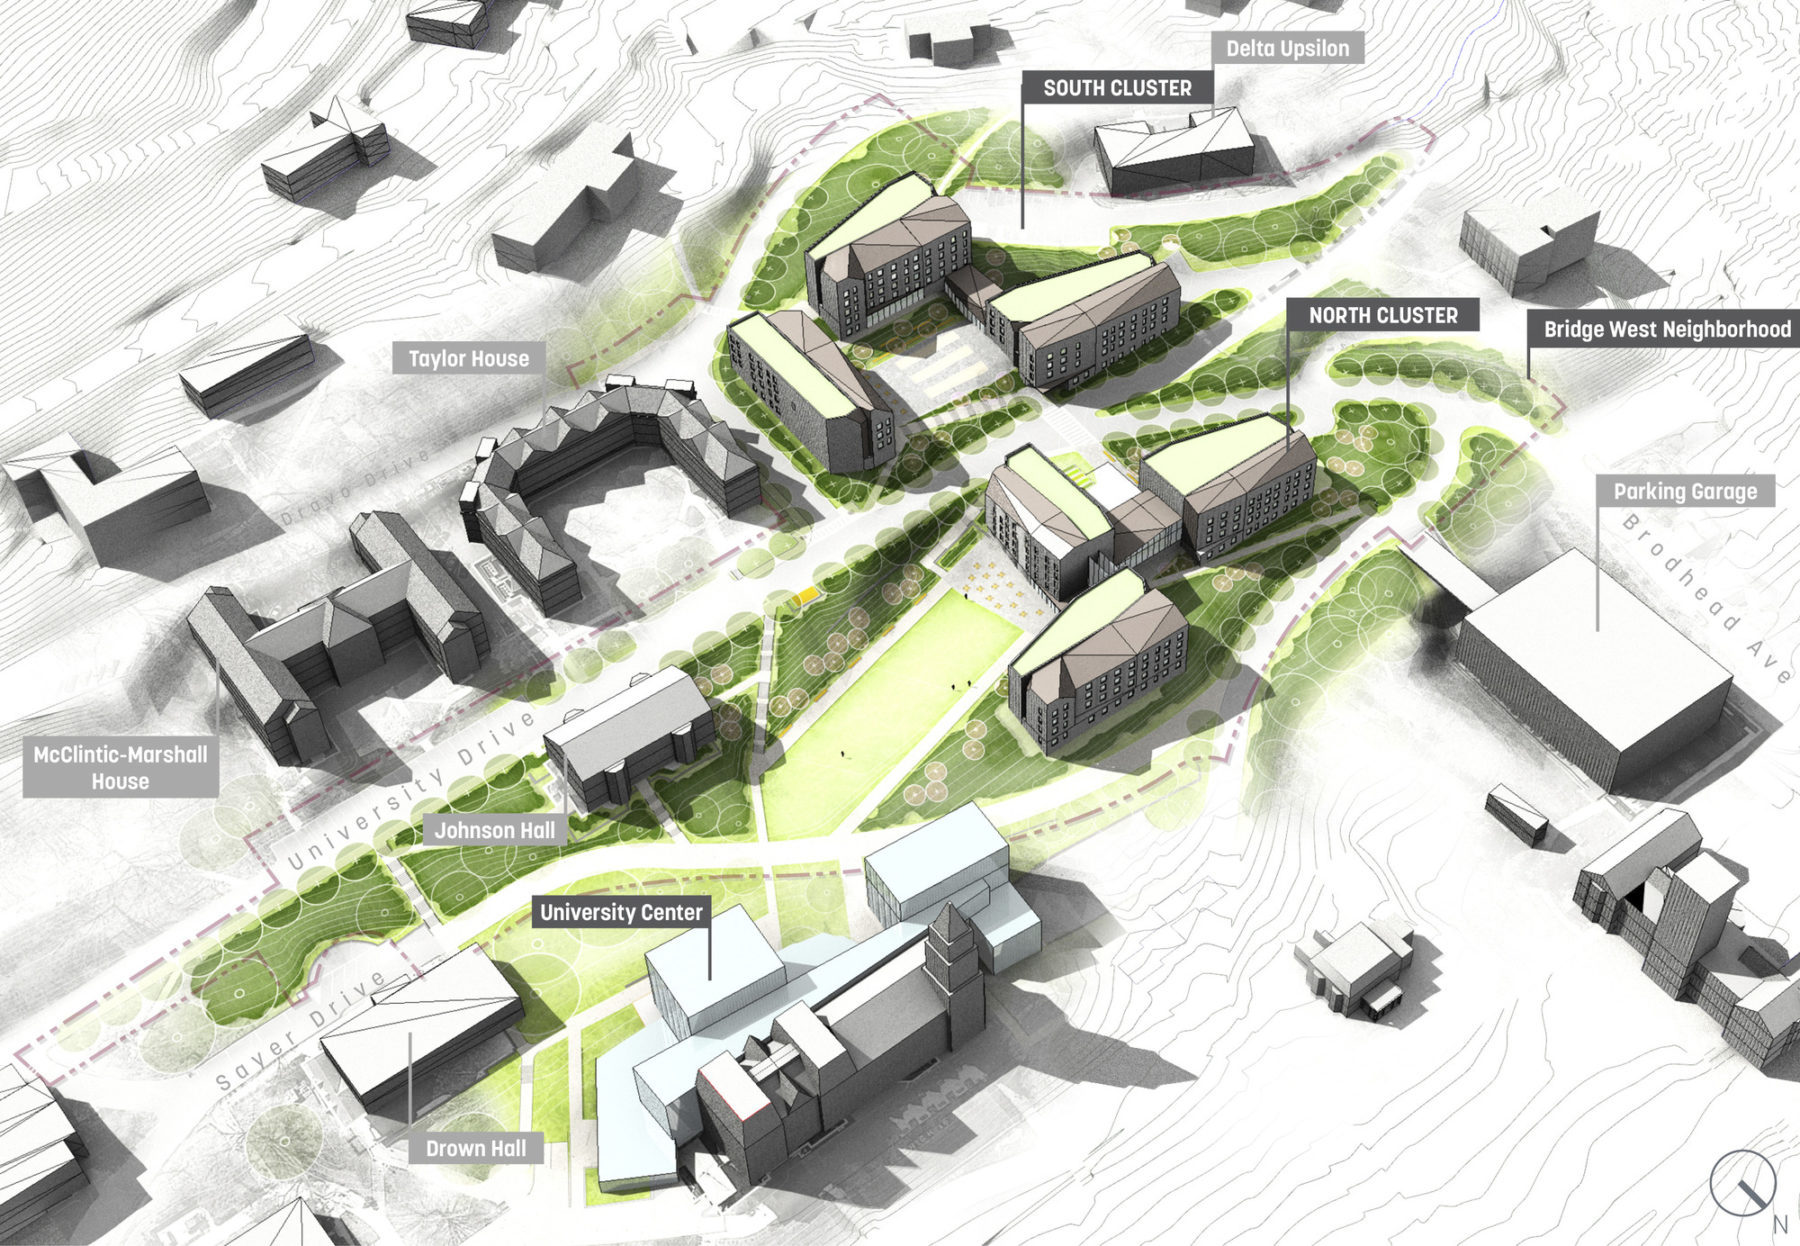 axon diagram of new campus neighborhood featuring new housing